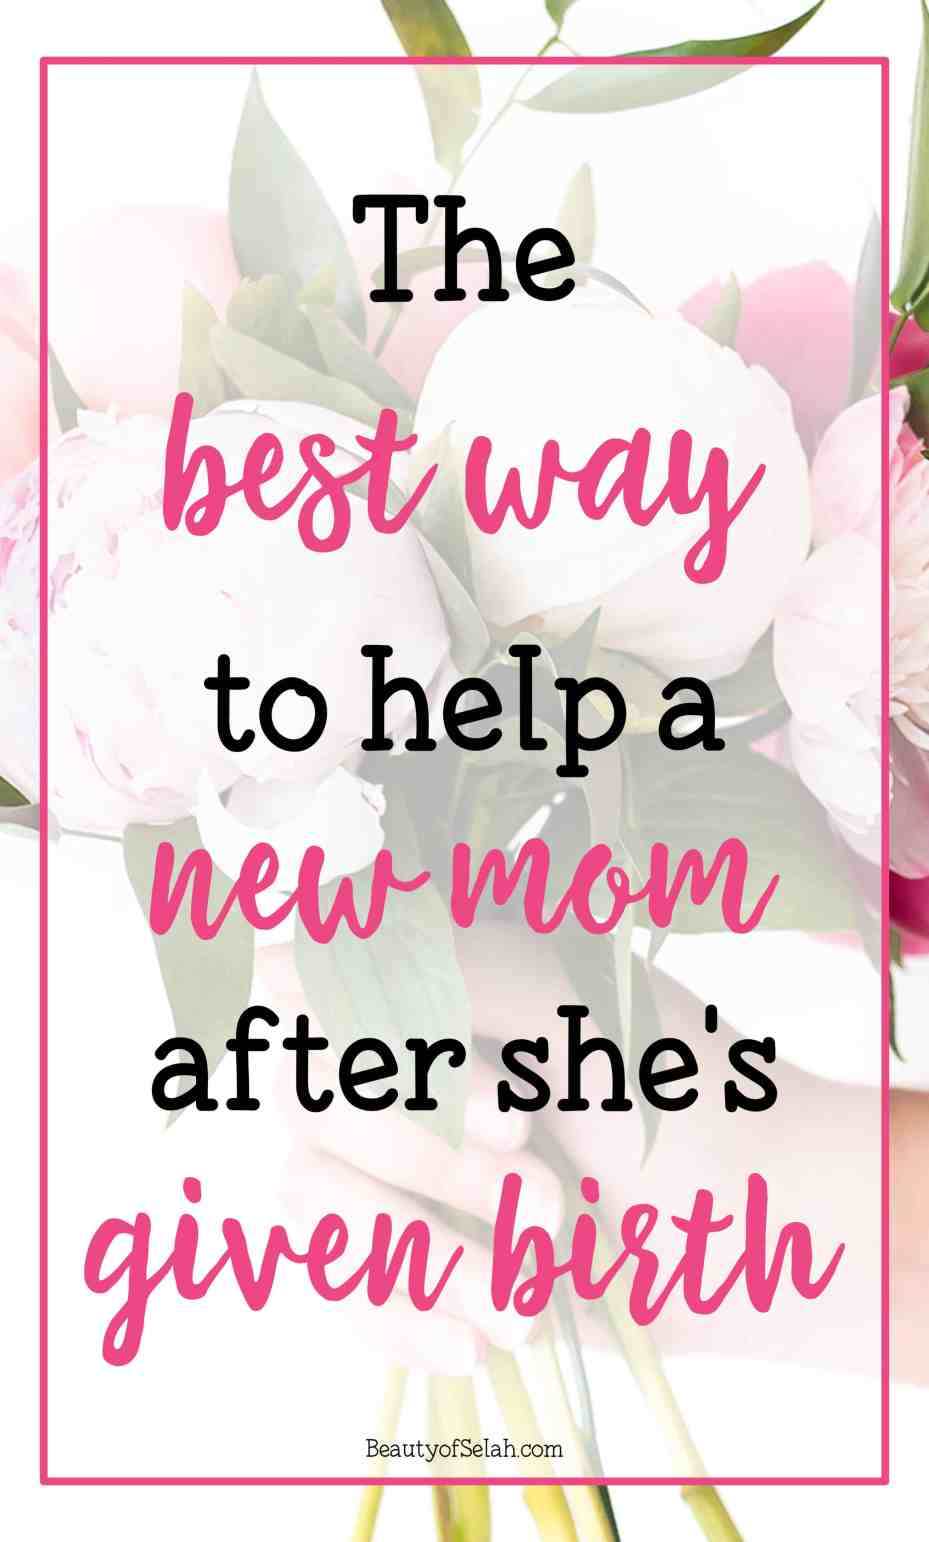 The Best Way to Help a New Mom after she's Given Birth